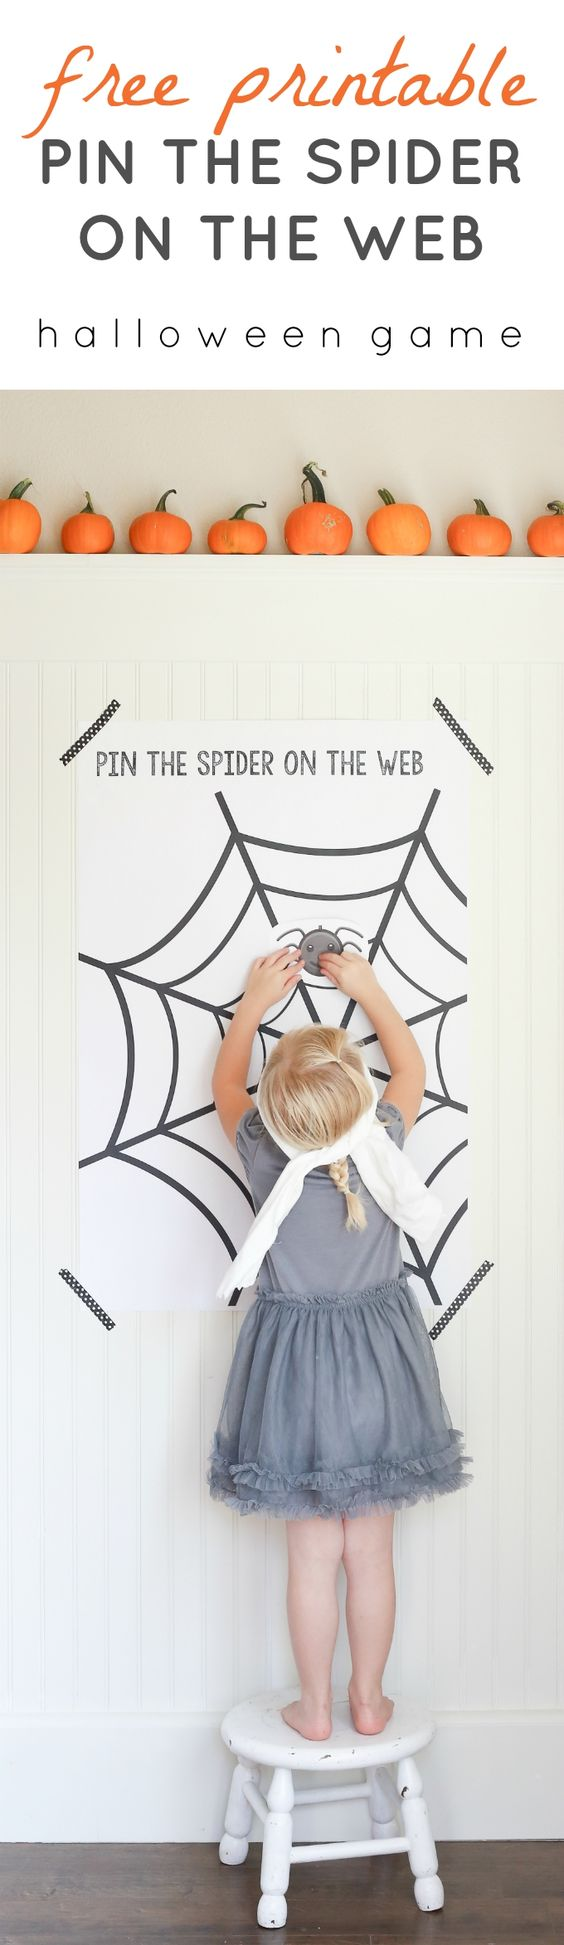 """Free Printable """"Pin The Spider on the Web"""" Game. A Halloween twist to the classic Pin the Tail on the Donkey!"""